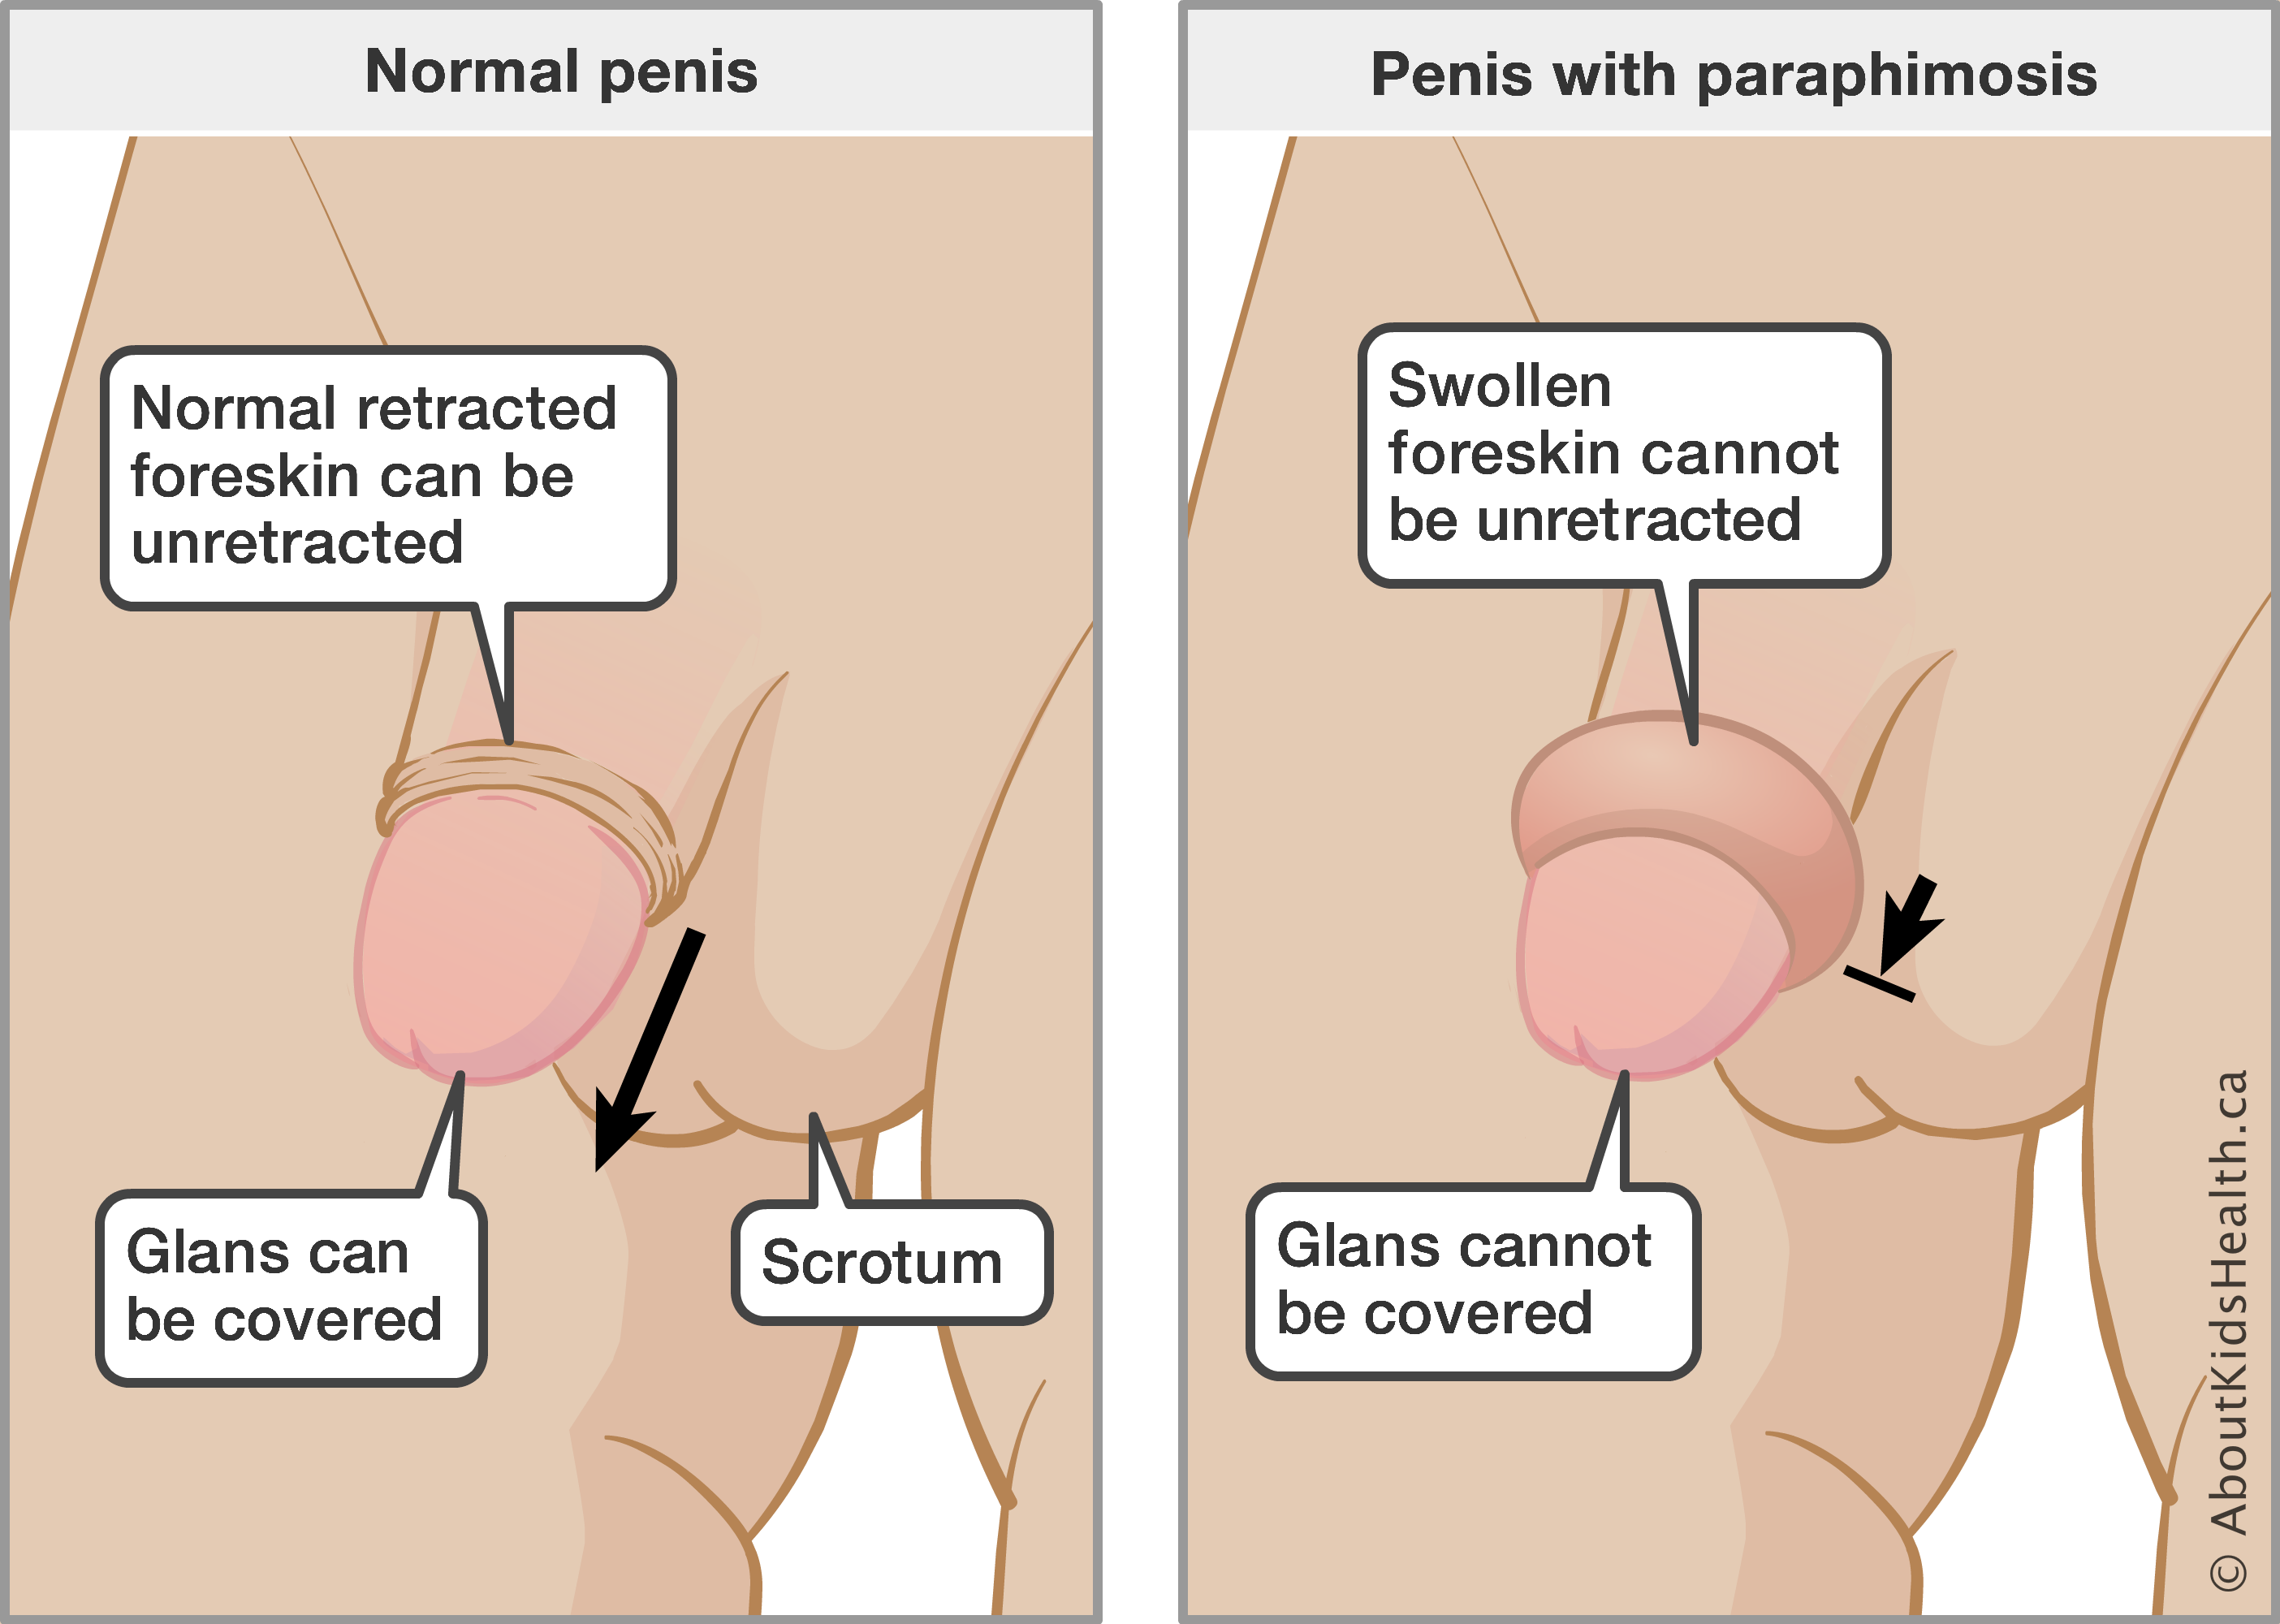 Glans penis is abnormally sensitive